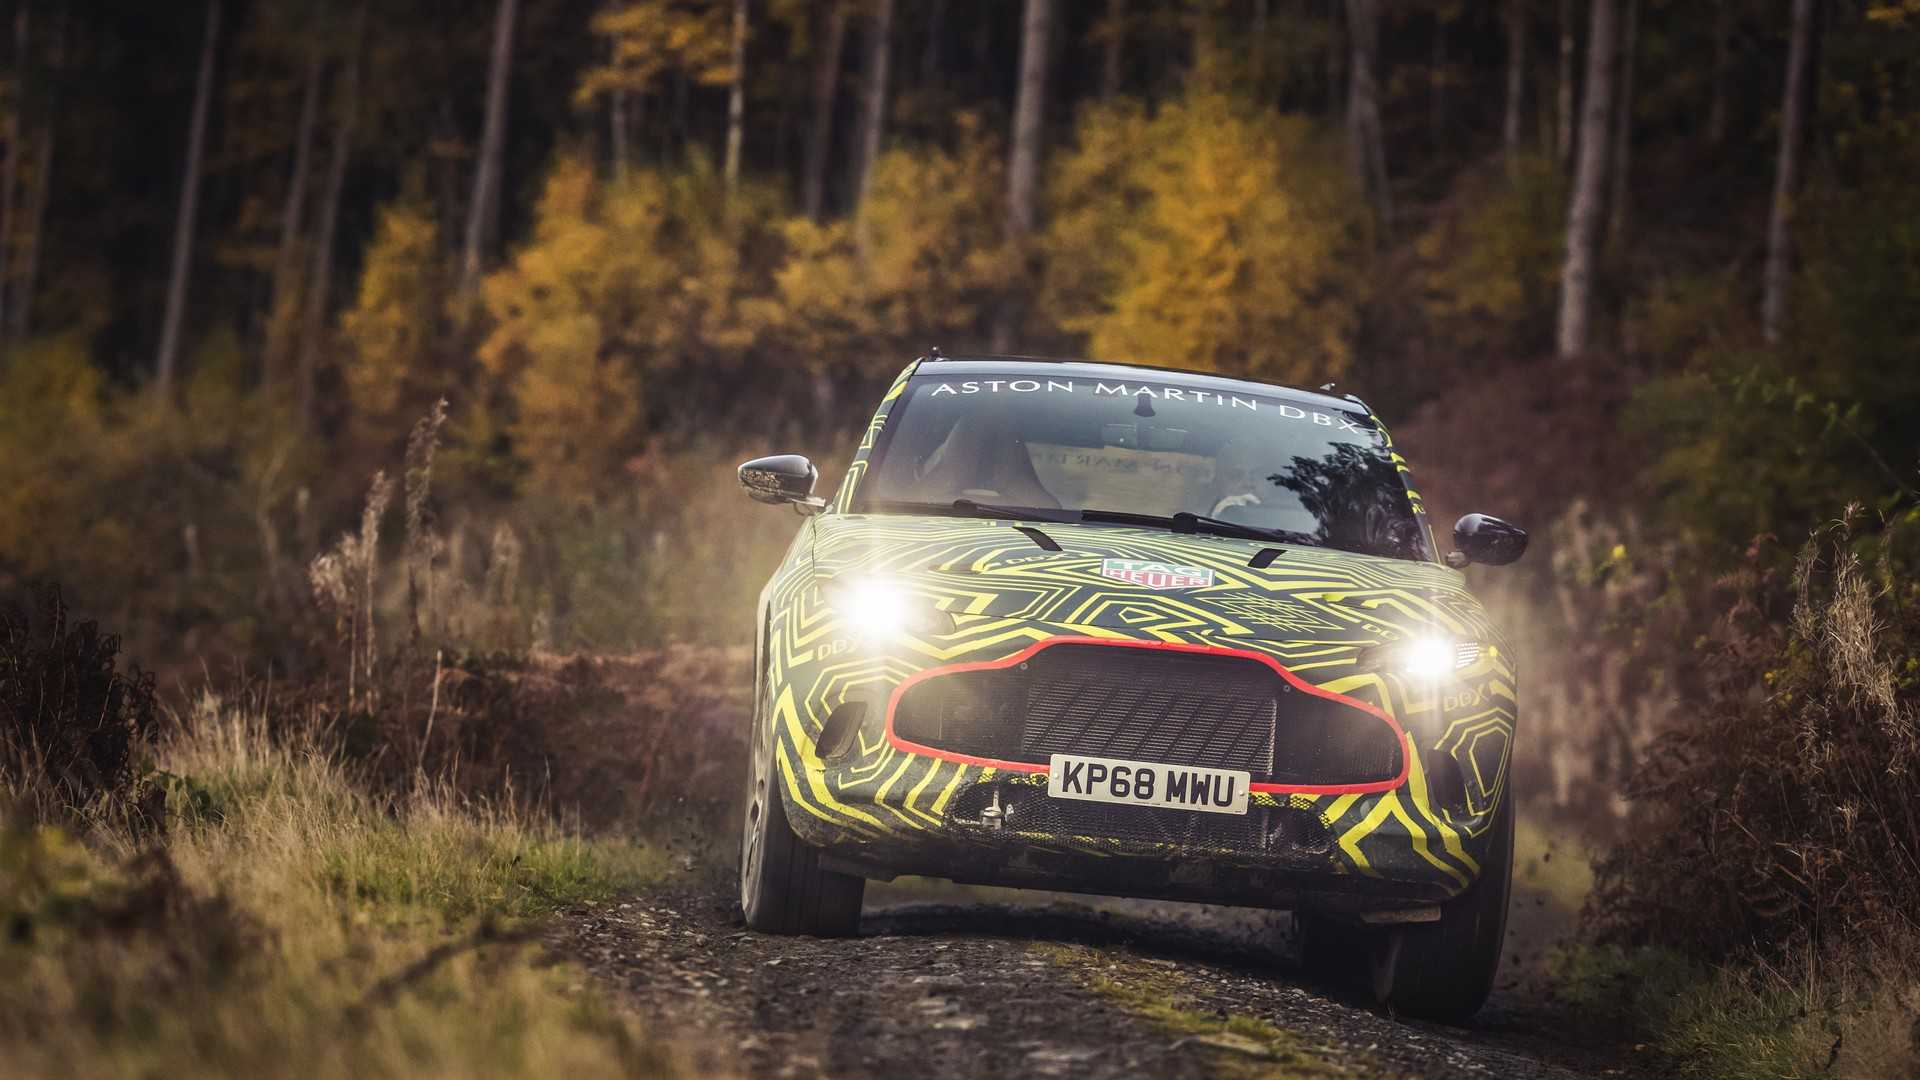 Aston Martin gives us a closer look at its upcoming SUV